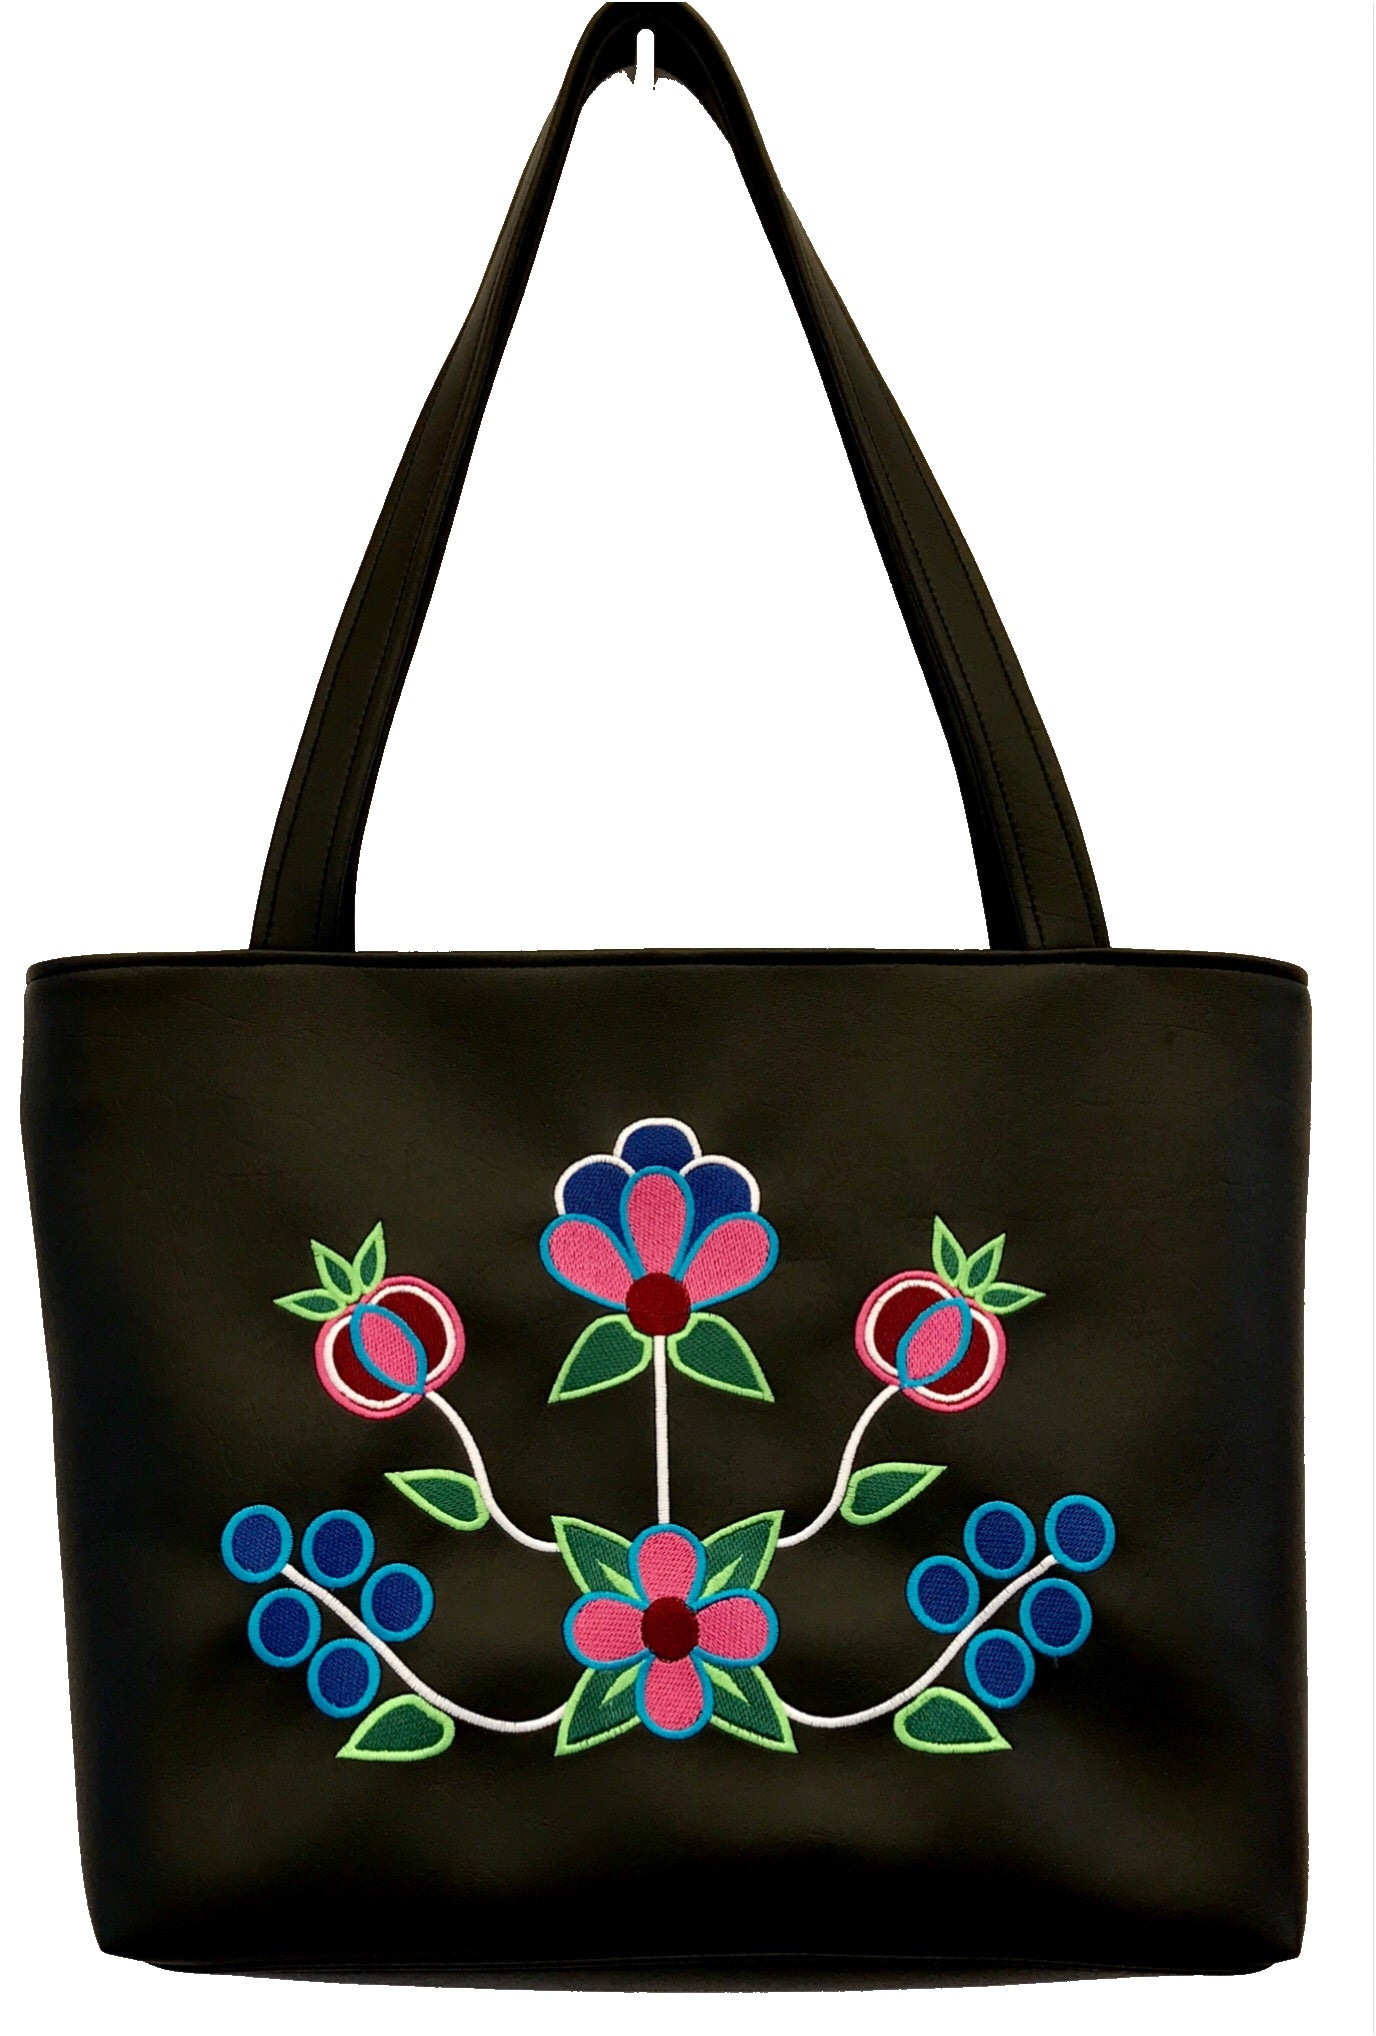 Zaagiibagaa Shoulder Tote In 'The Pinks'